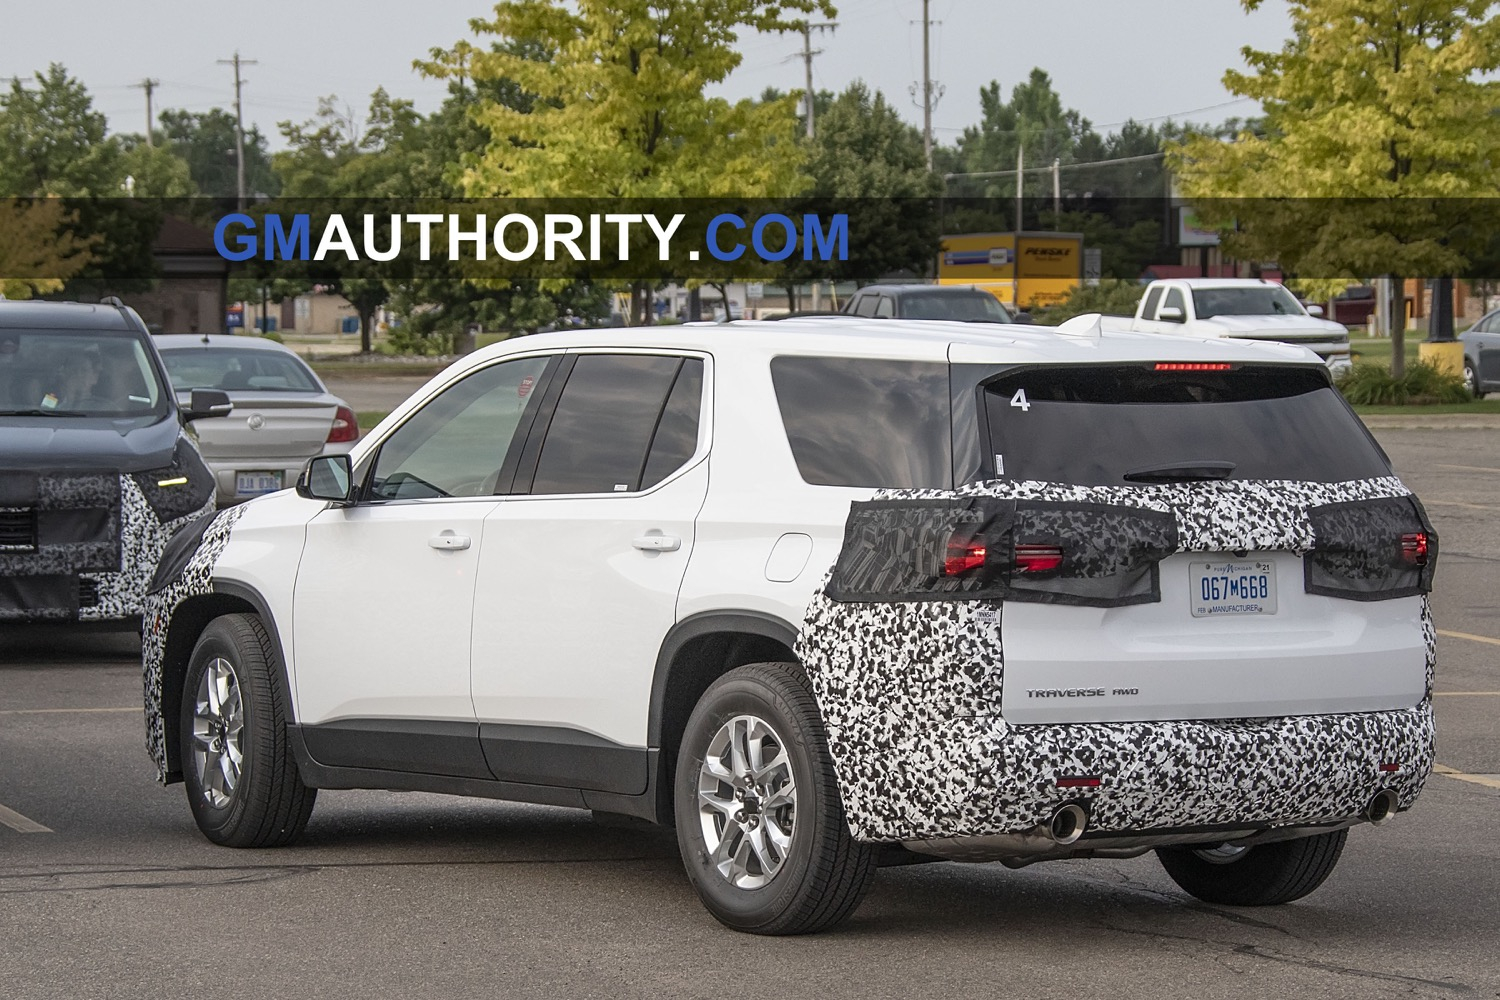 2021 Chevrolet Traverse Info, Specs, Wiki | Gm Authority 2021 Chevrolet Traverse Rs Price, Colors, Features